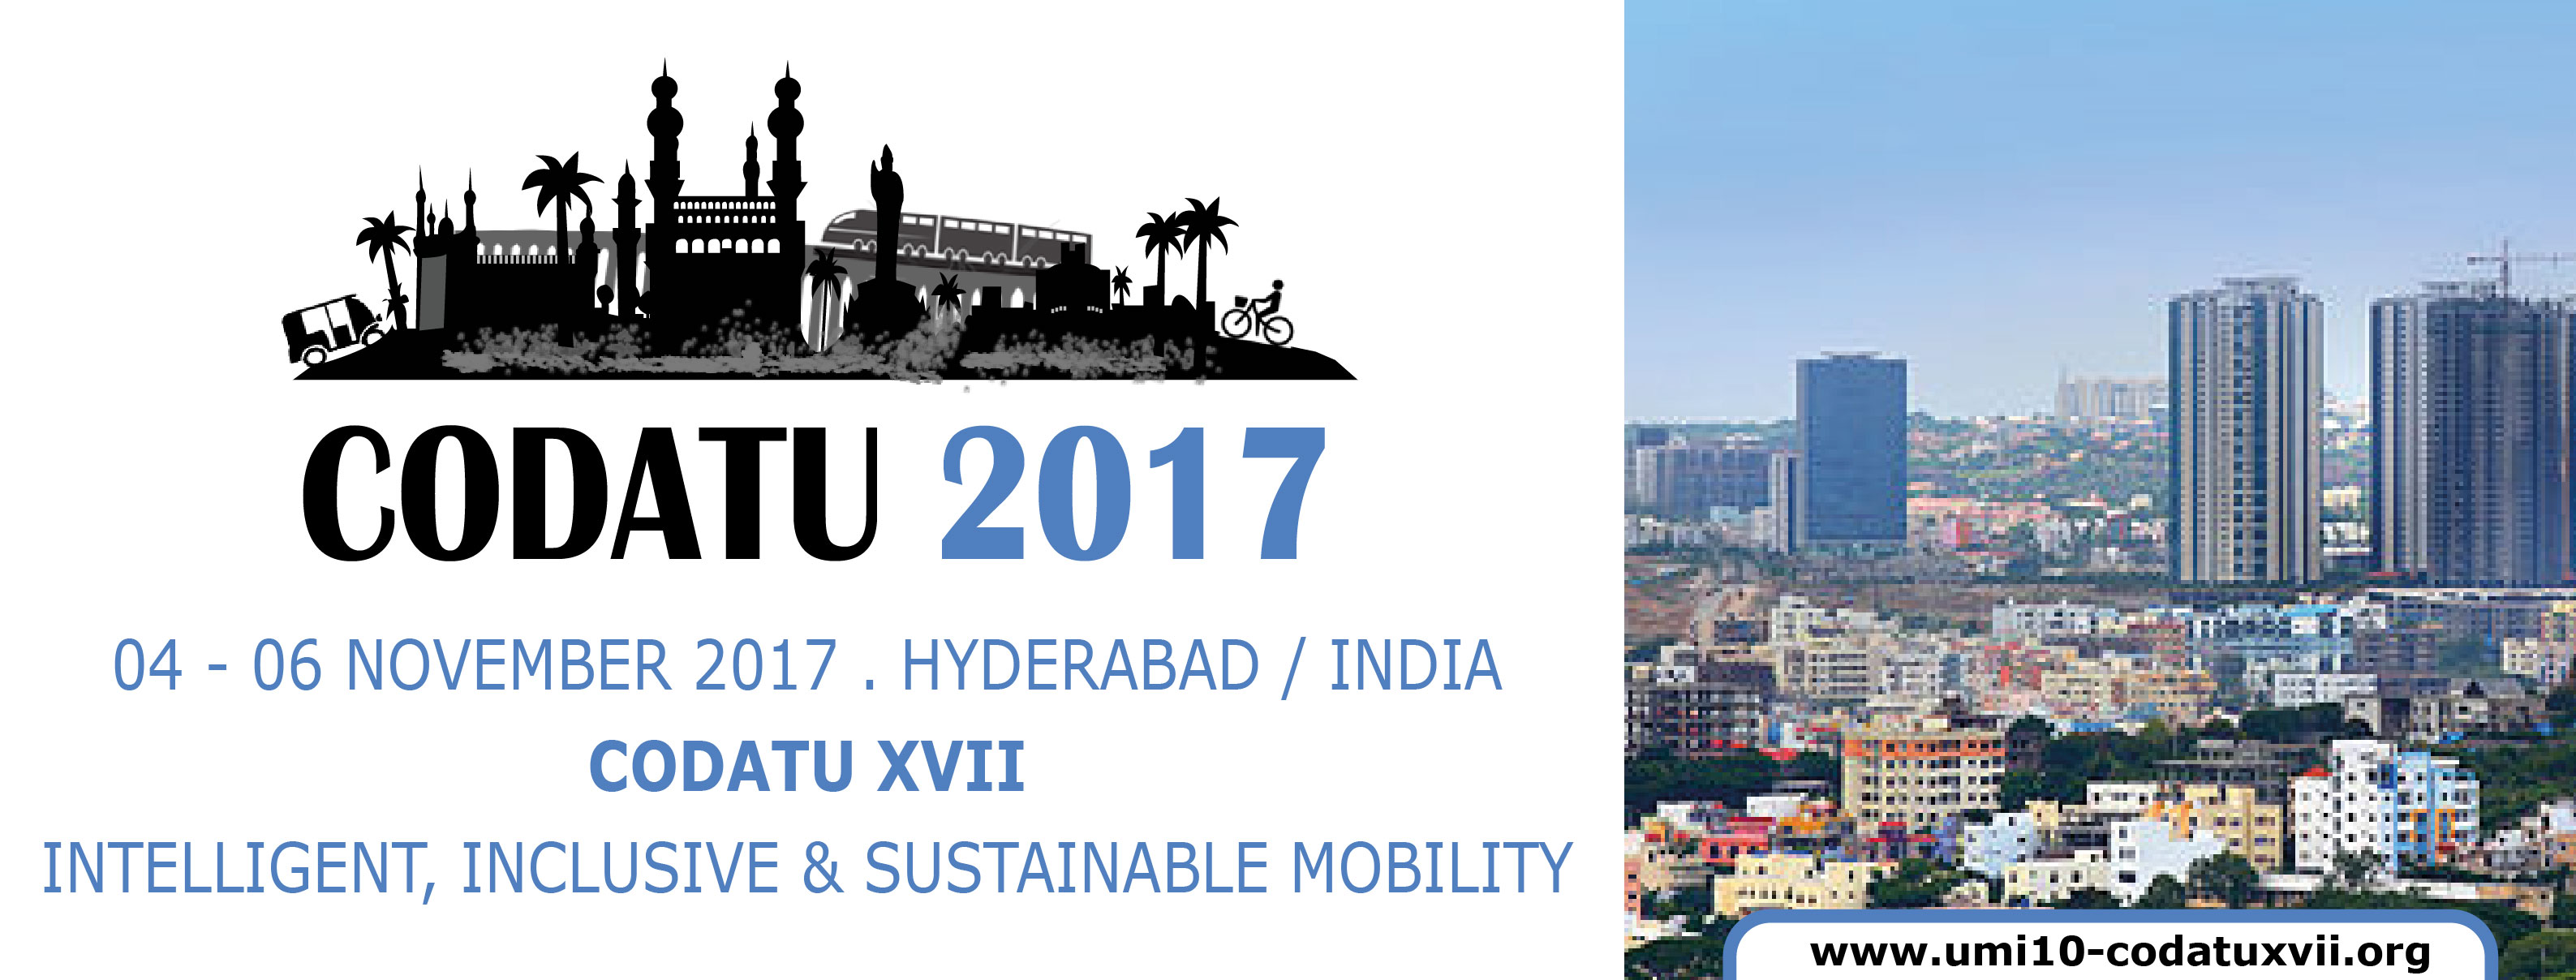 [CODATU XVII] Presentation : Service Gap Analysis of Public Buses in Bangalore With Respect to Women Safety – Prof. Ashish Verma, IISc Bangalore